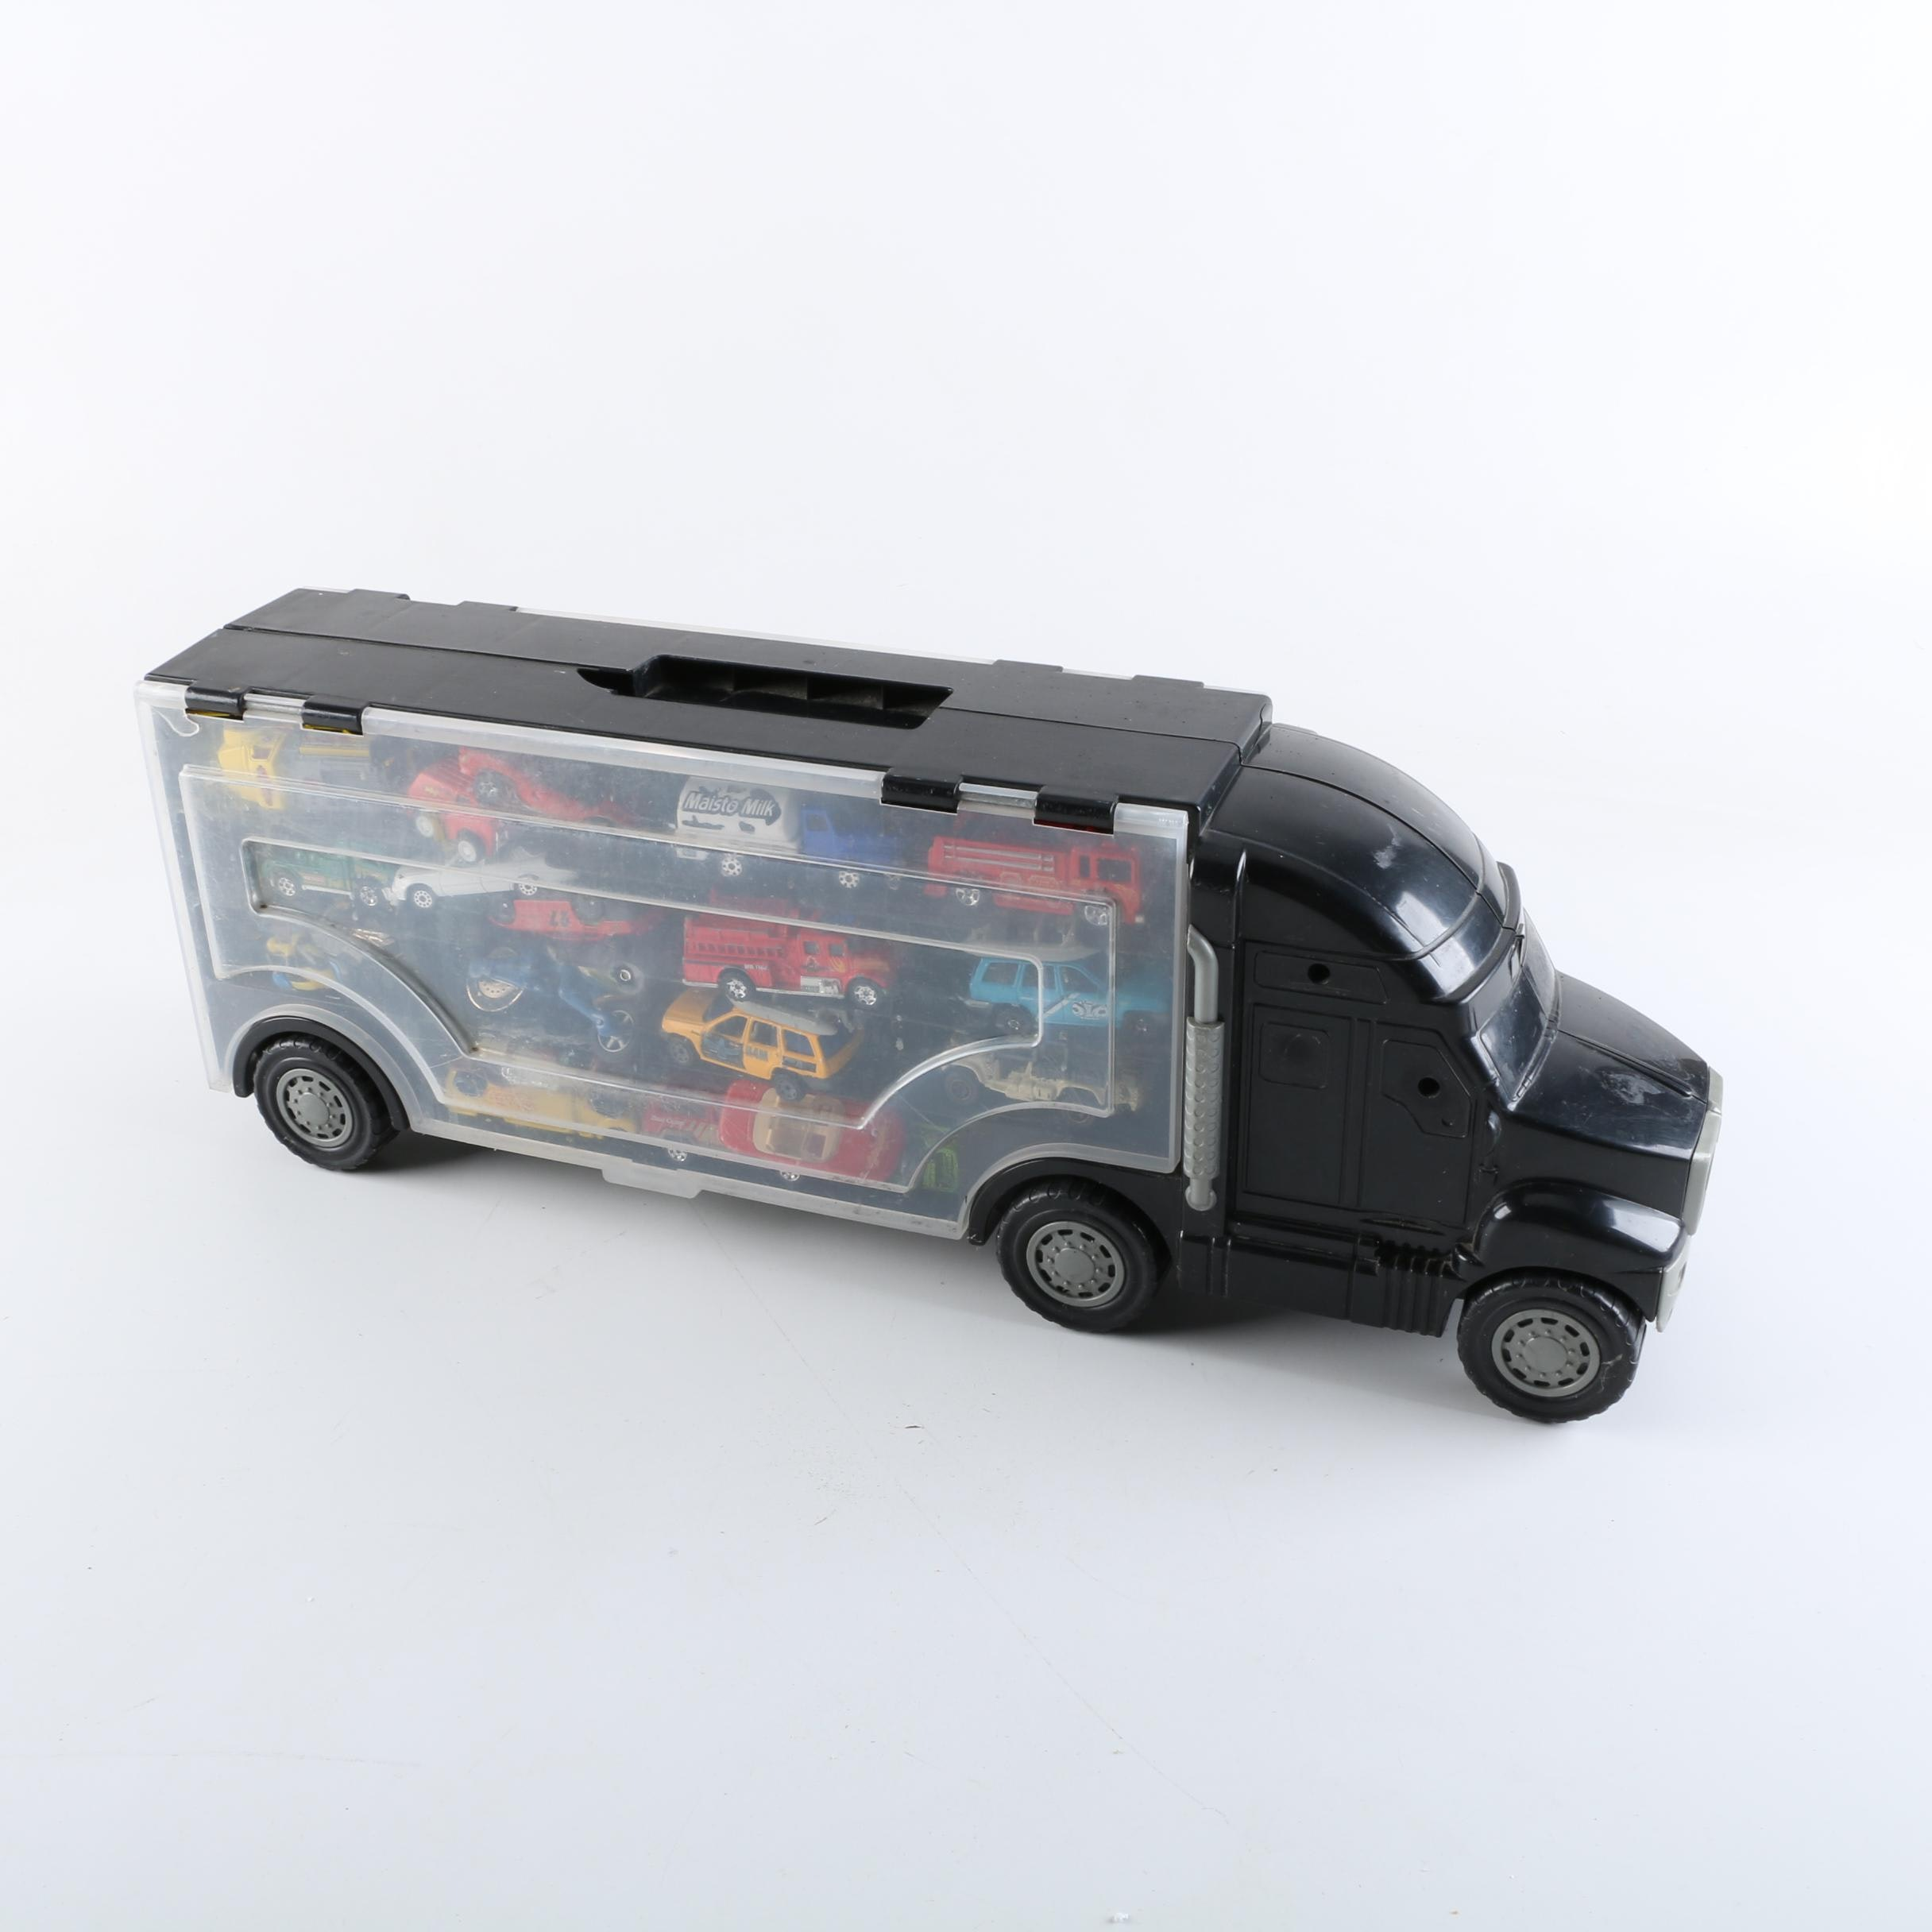 Semi Truck Car Transporter Storage Case With Matchbox And Hot Wheels Cars  ...